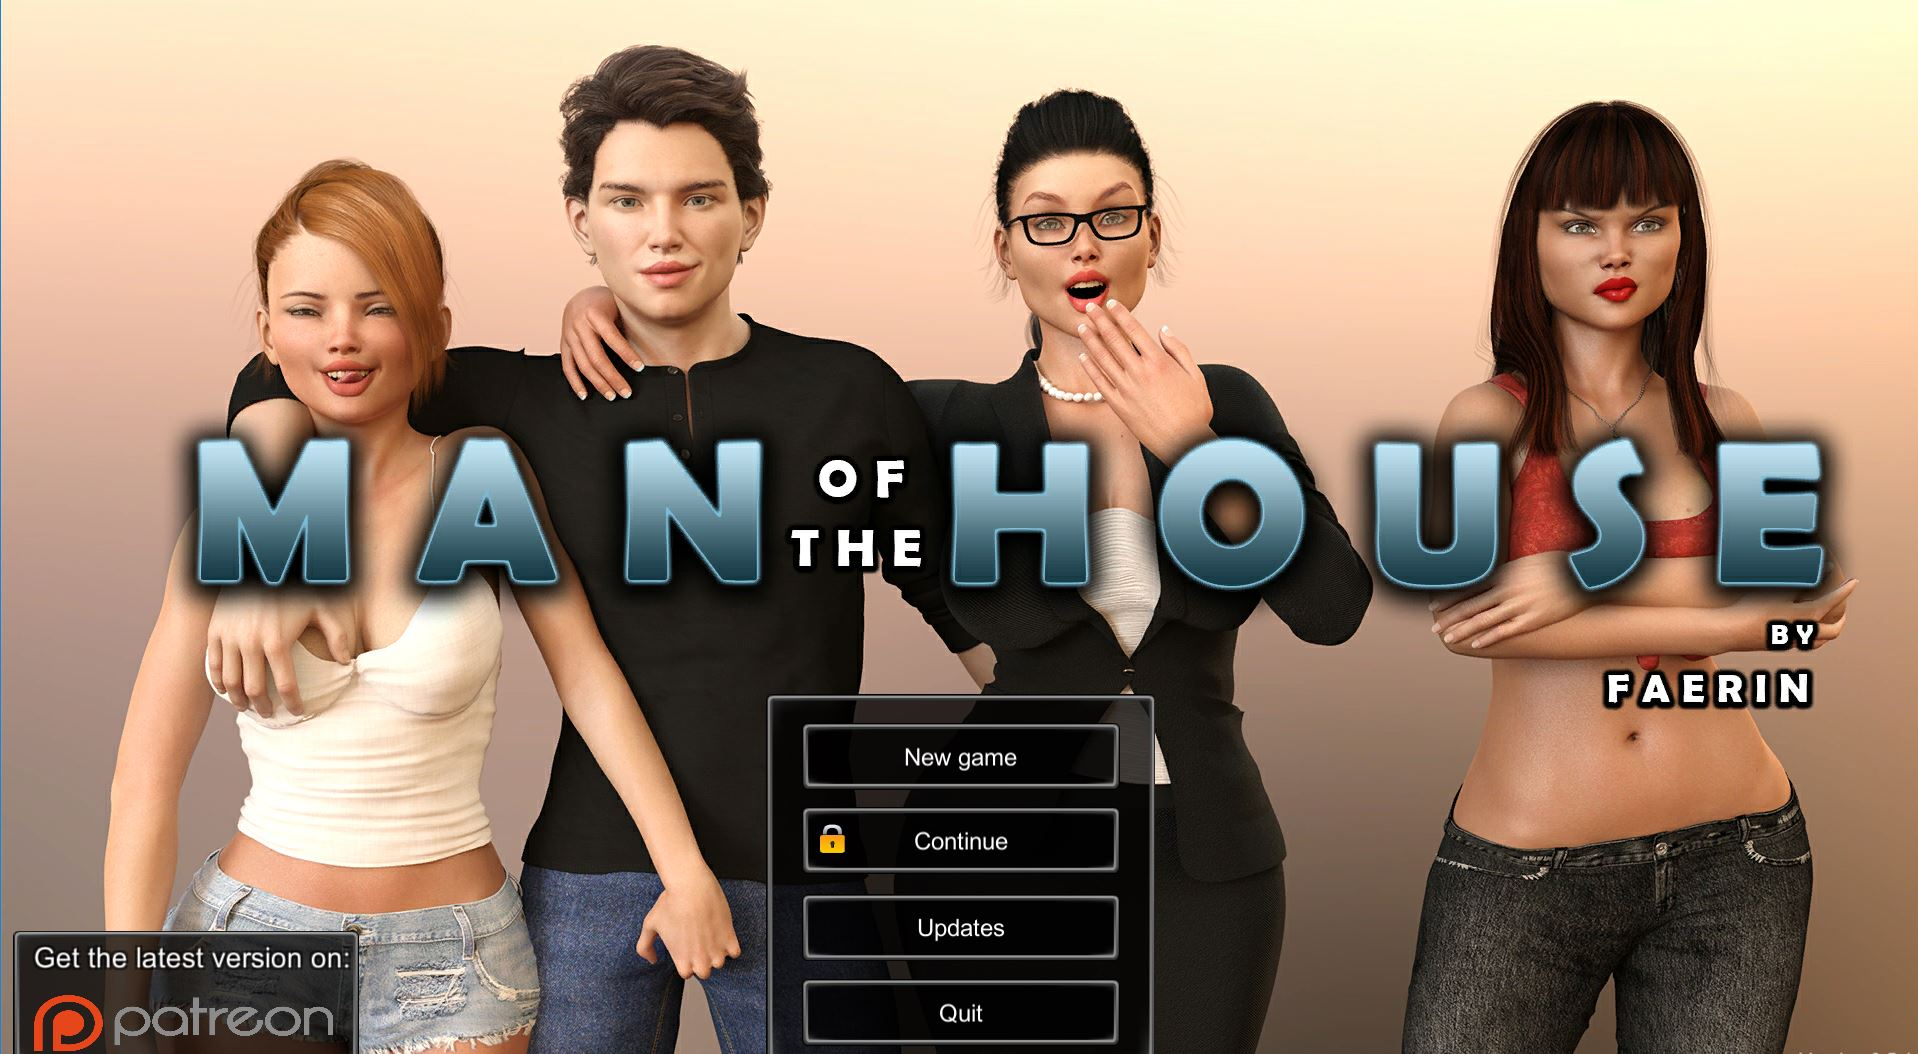 Man Of The House – Version 1.0.2 Extra - Brother-Sister Mother-Son family porn PC game 5